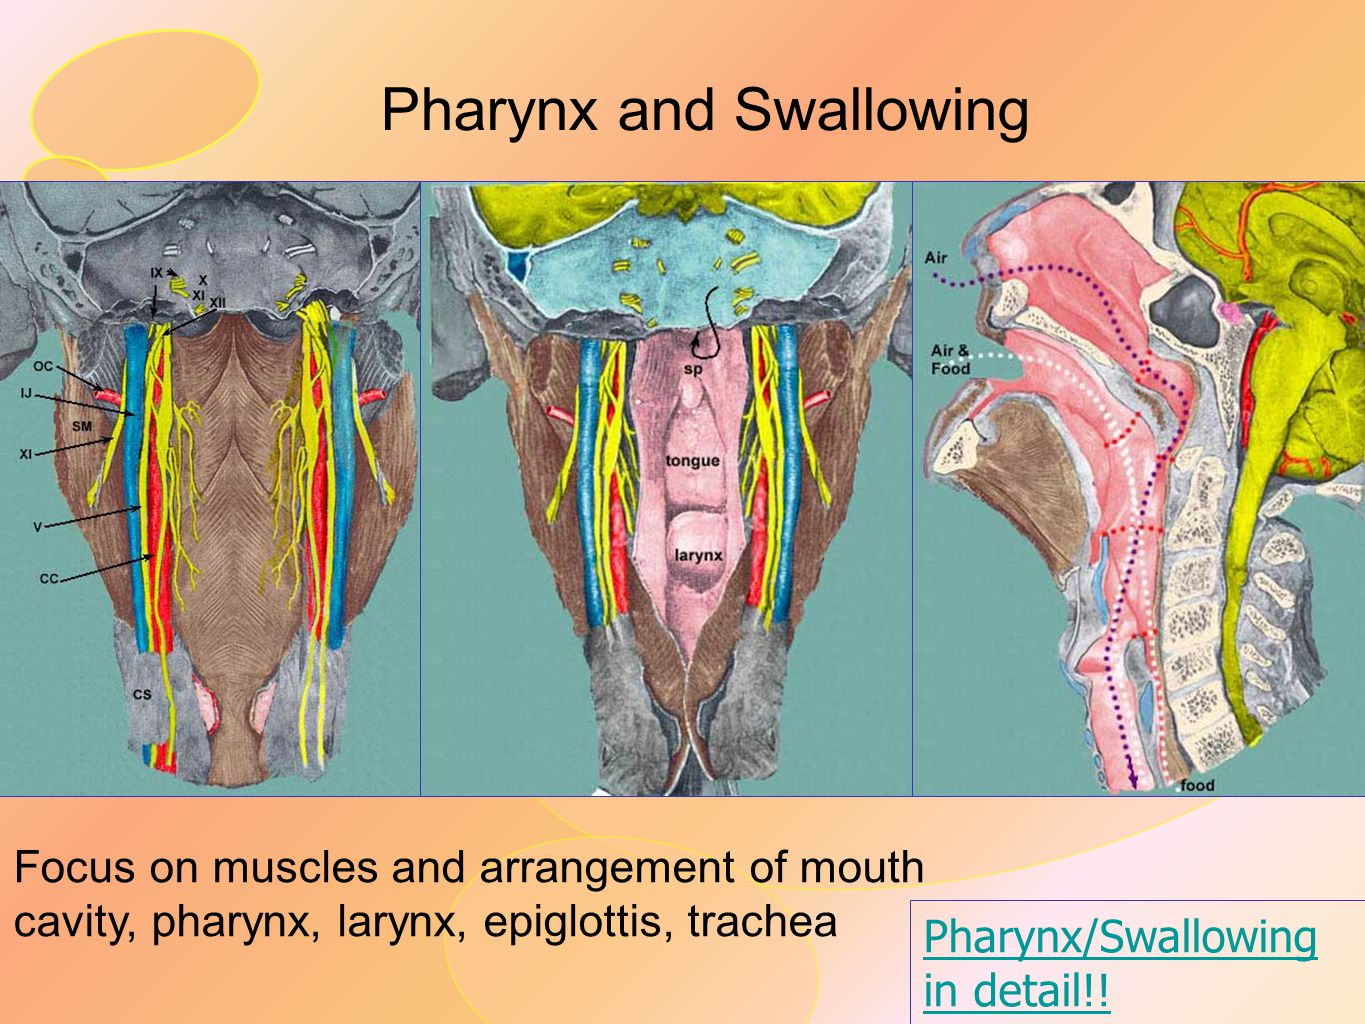 Pharynx and Swallowing